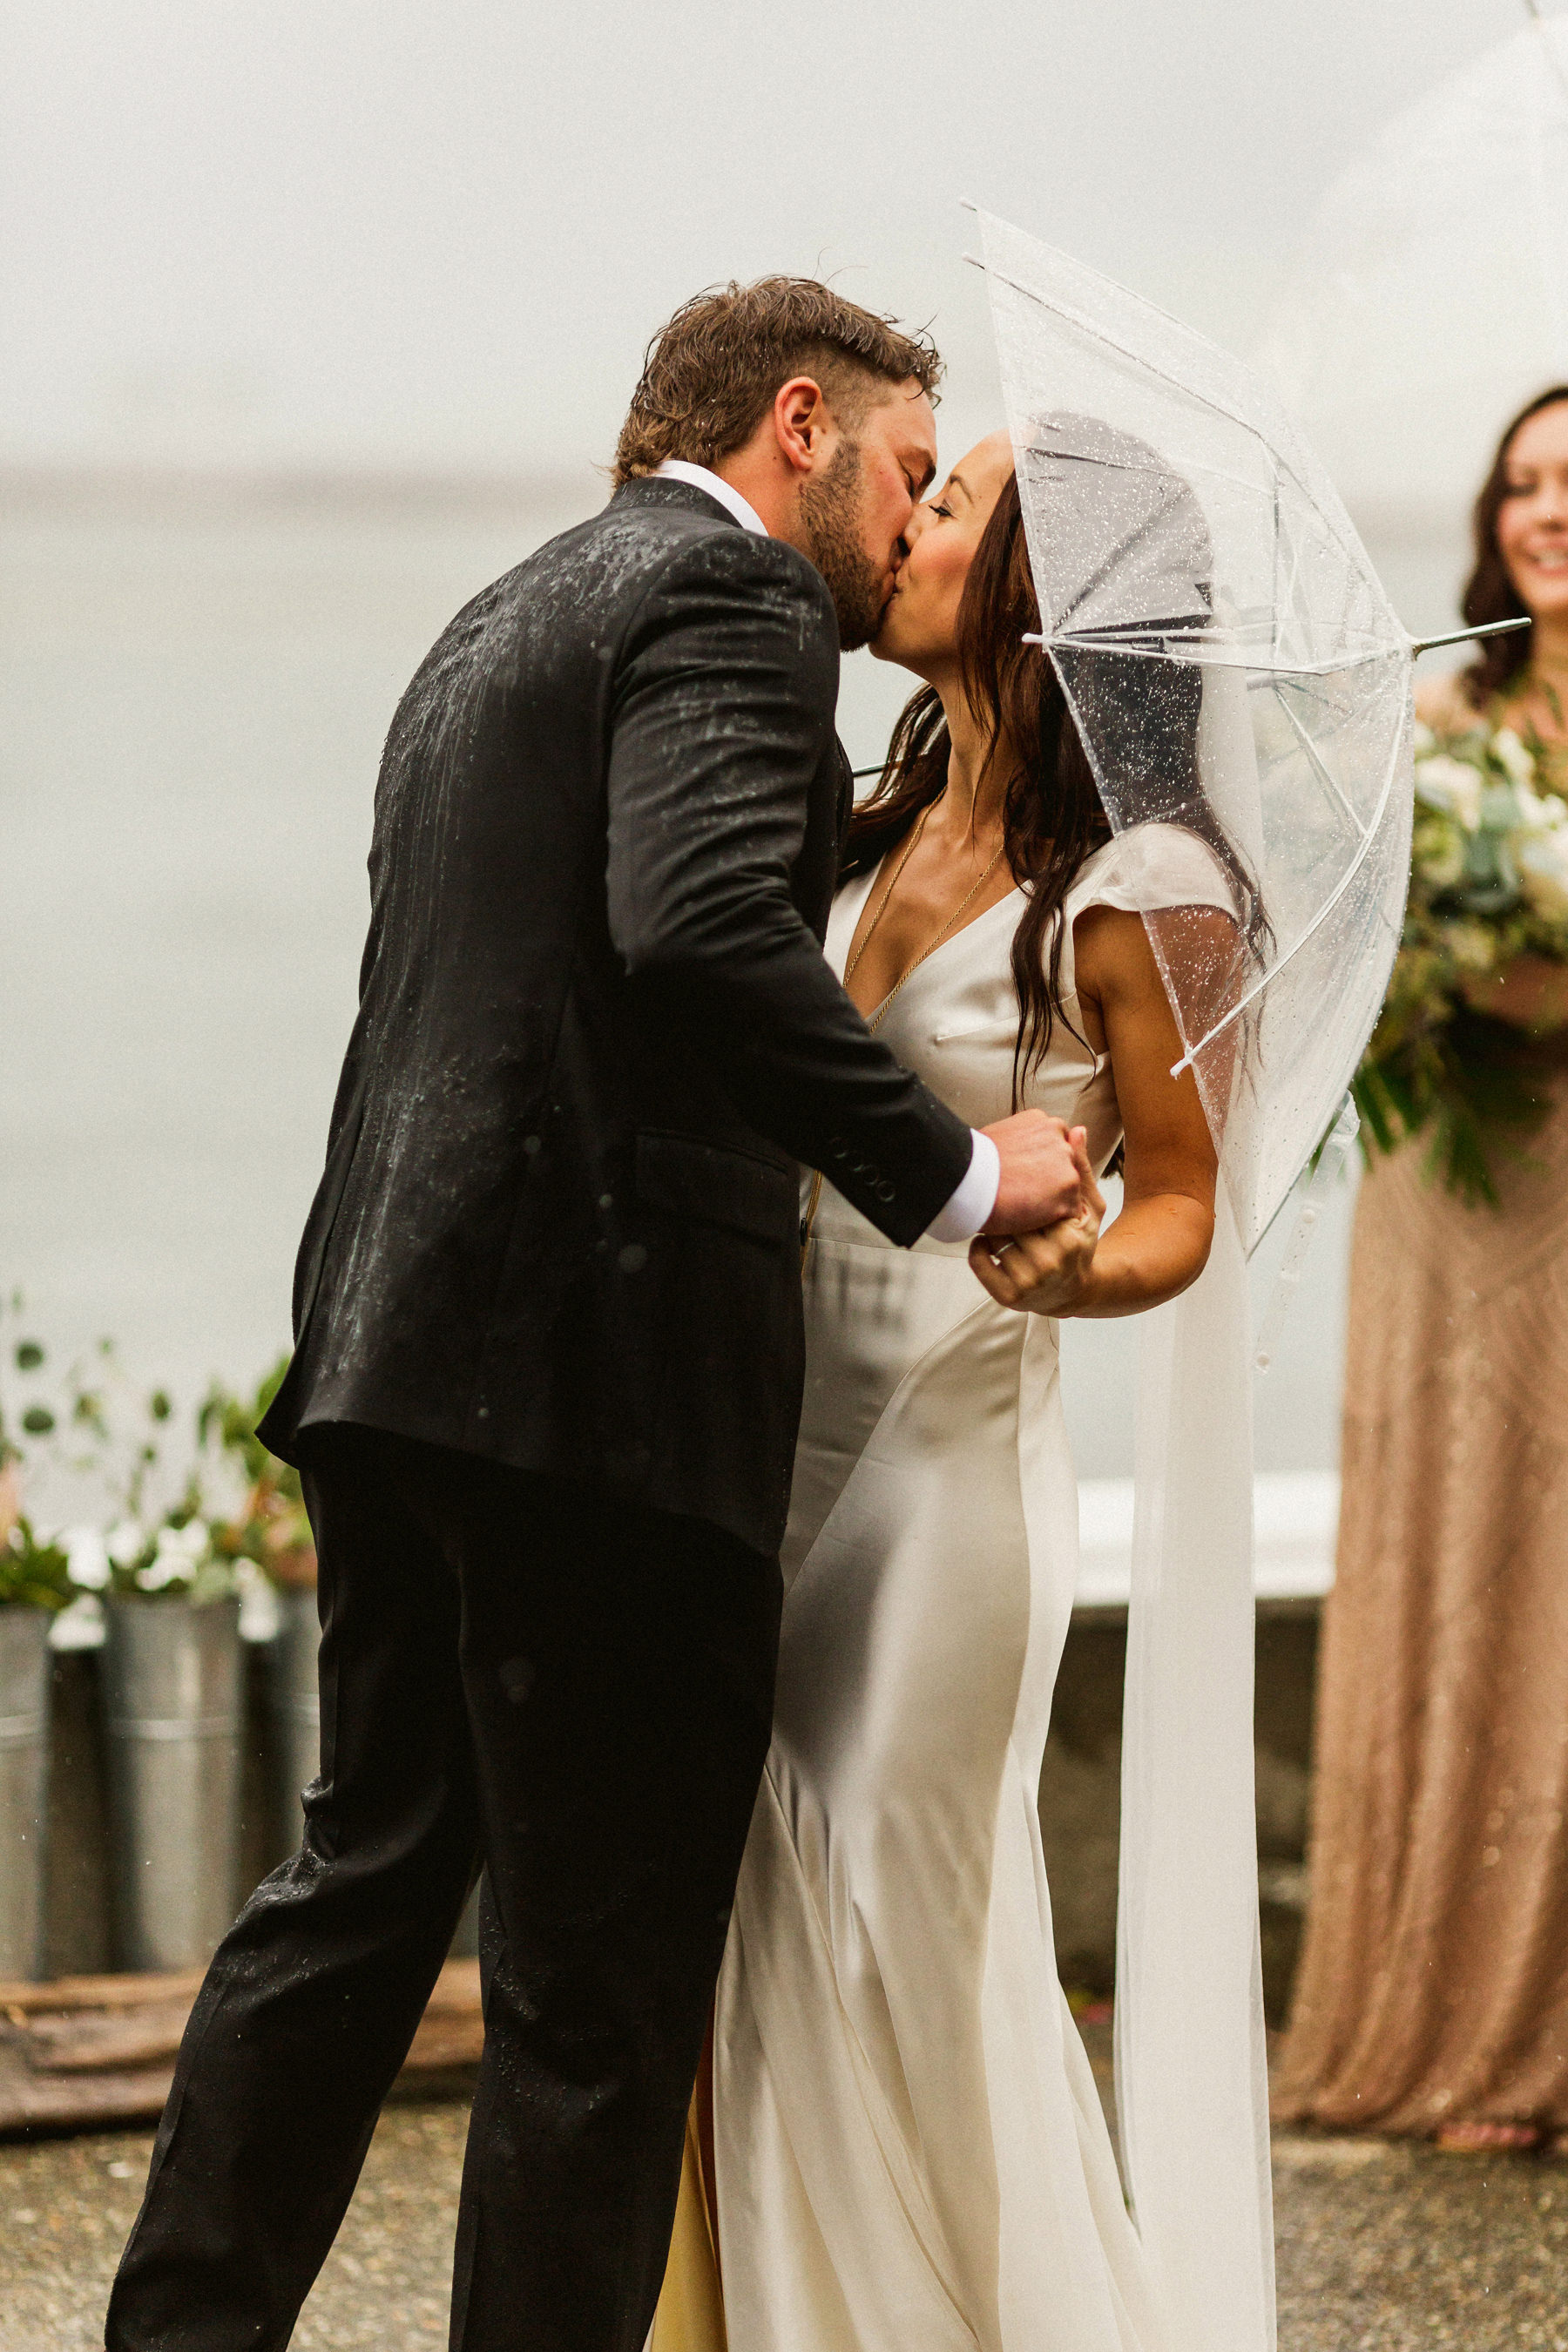 First Kiss in the Rain